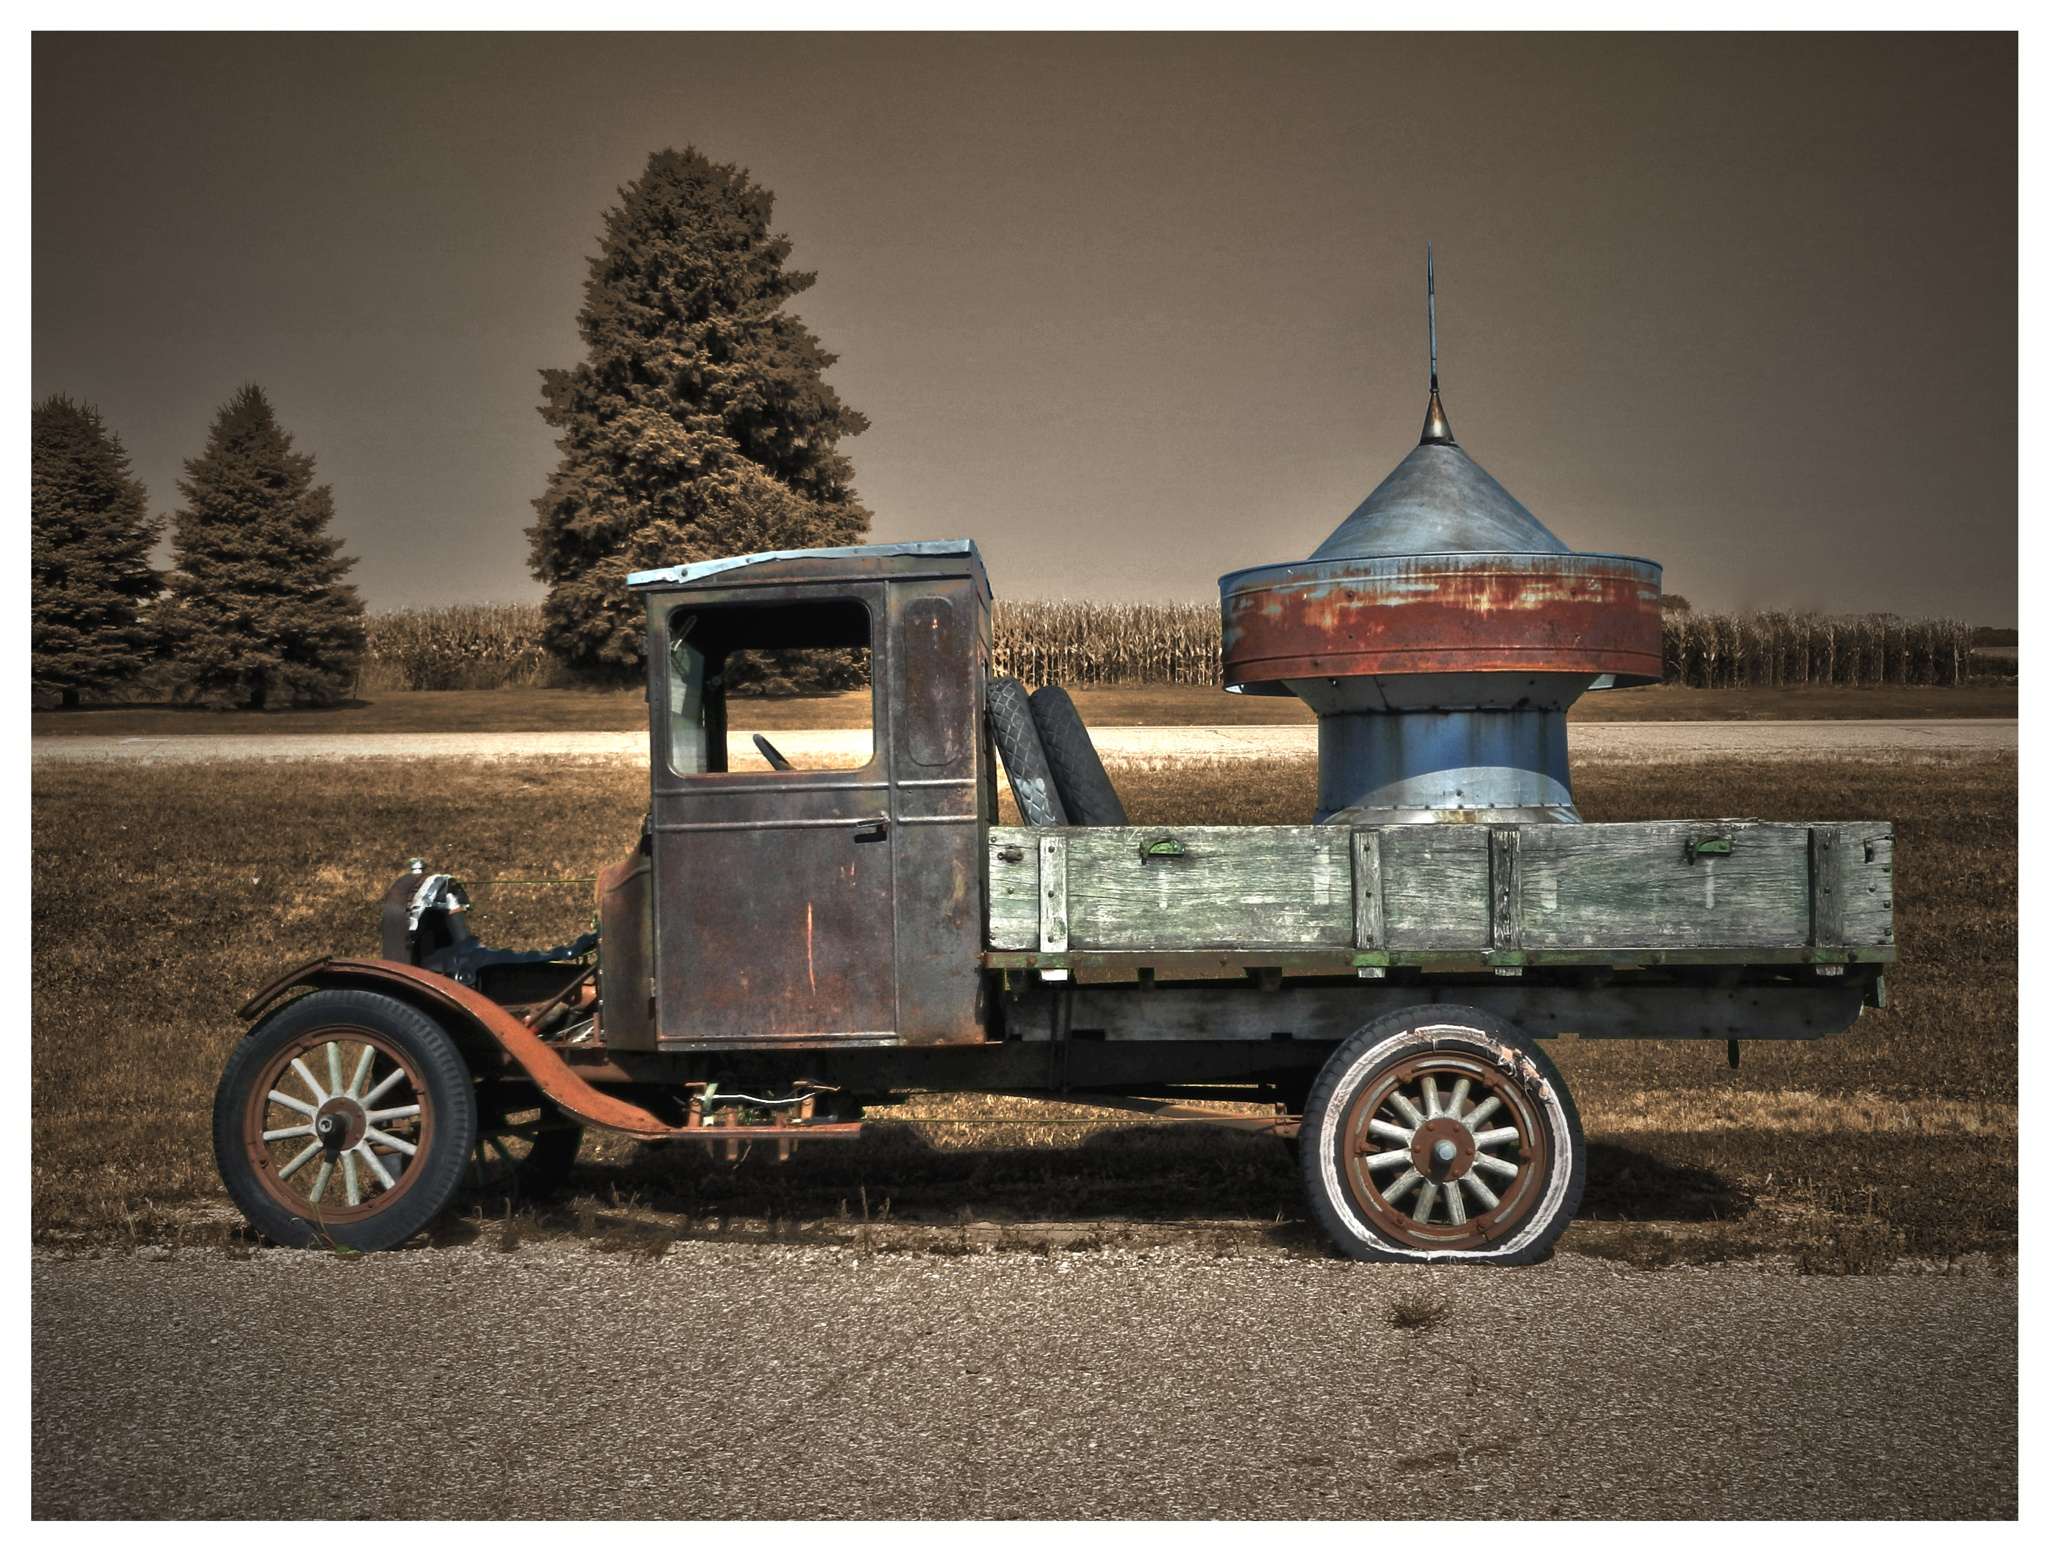 Old Minnesota Farmer's Truck by Linda Persson